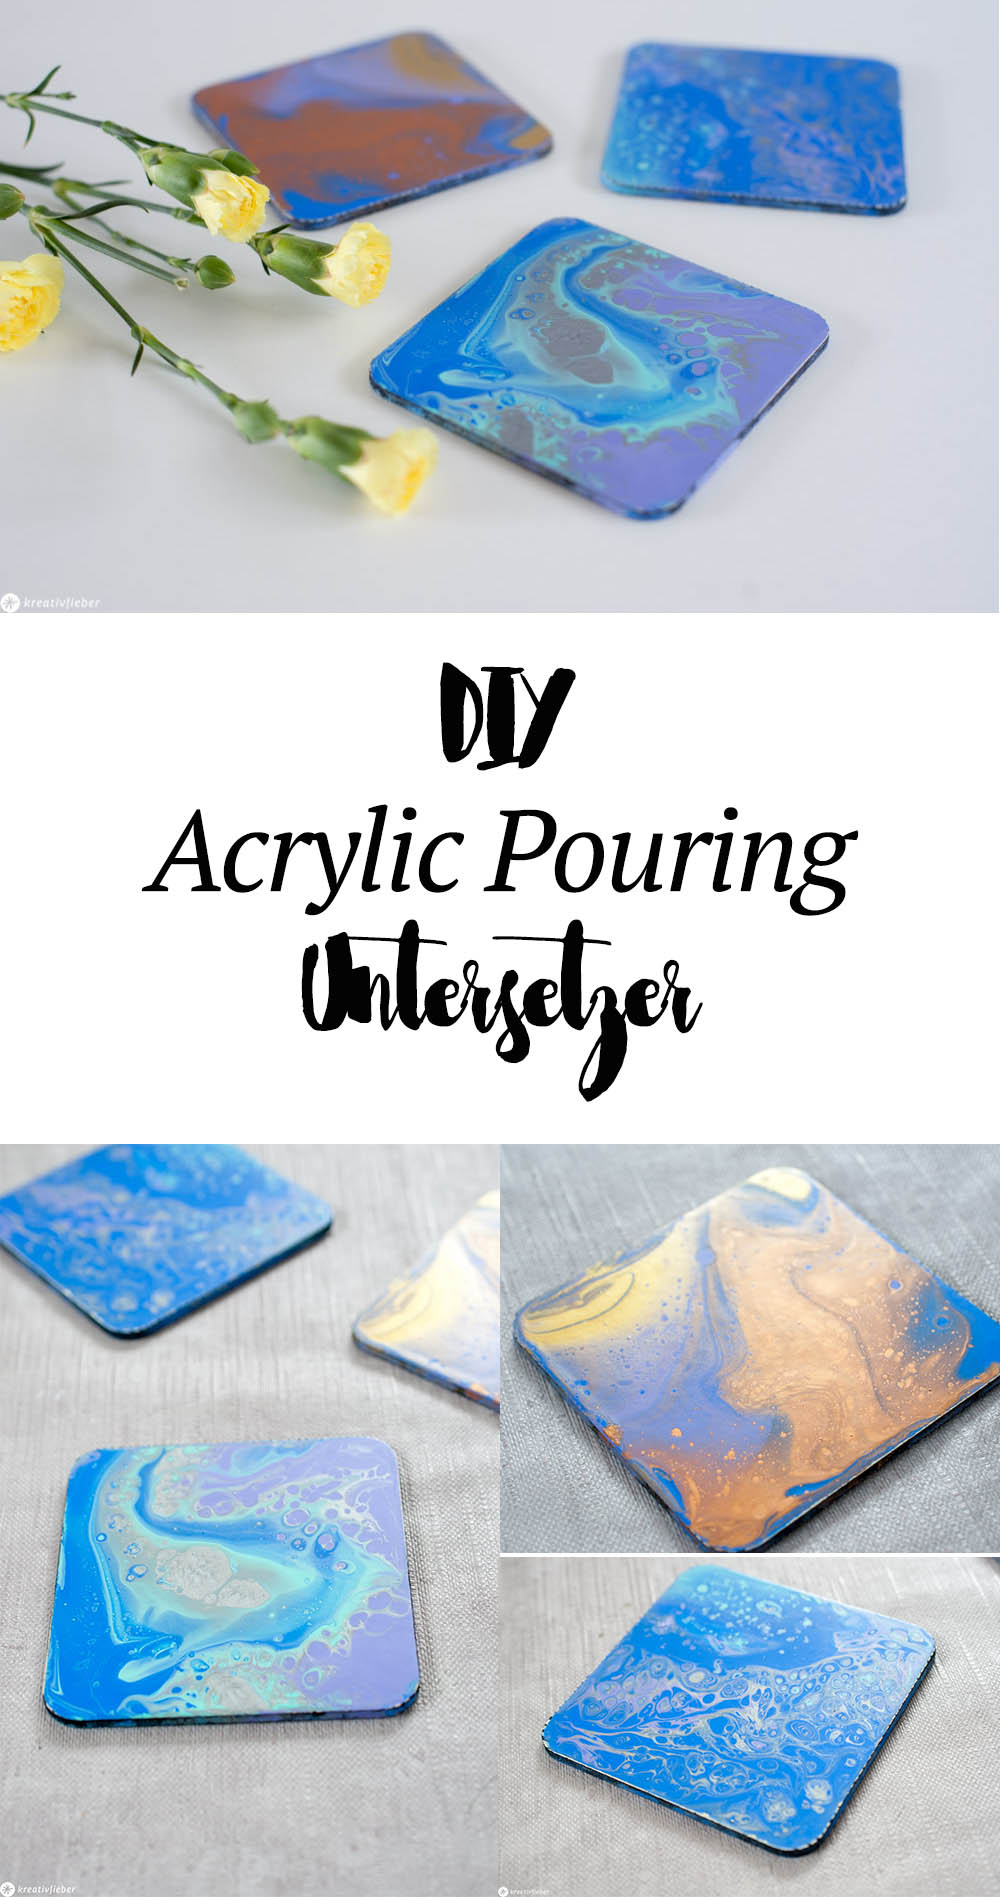 Anfänger Anleitung Acrylic Pouring